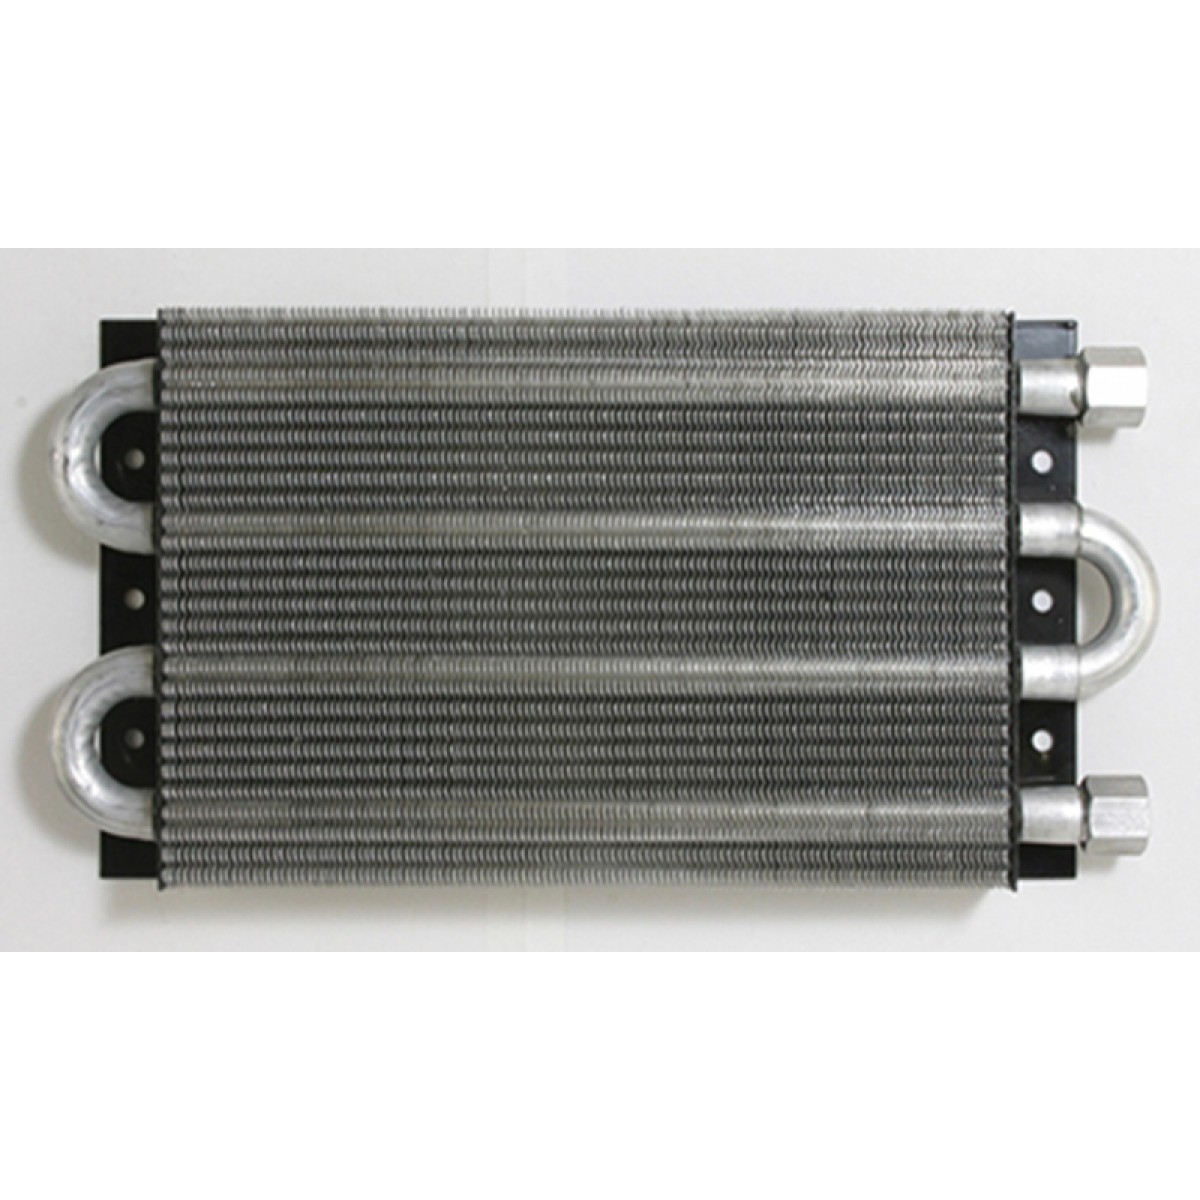 Engine Oil Cooler Coil Only (4 pass) 3/8 FPT #6D685E